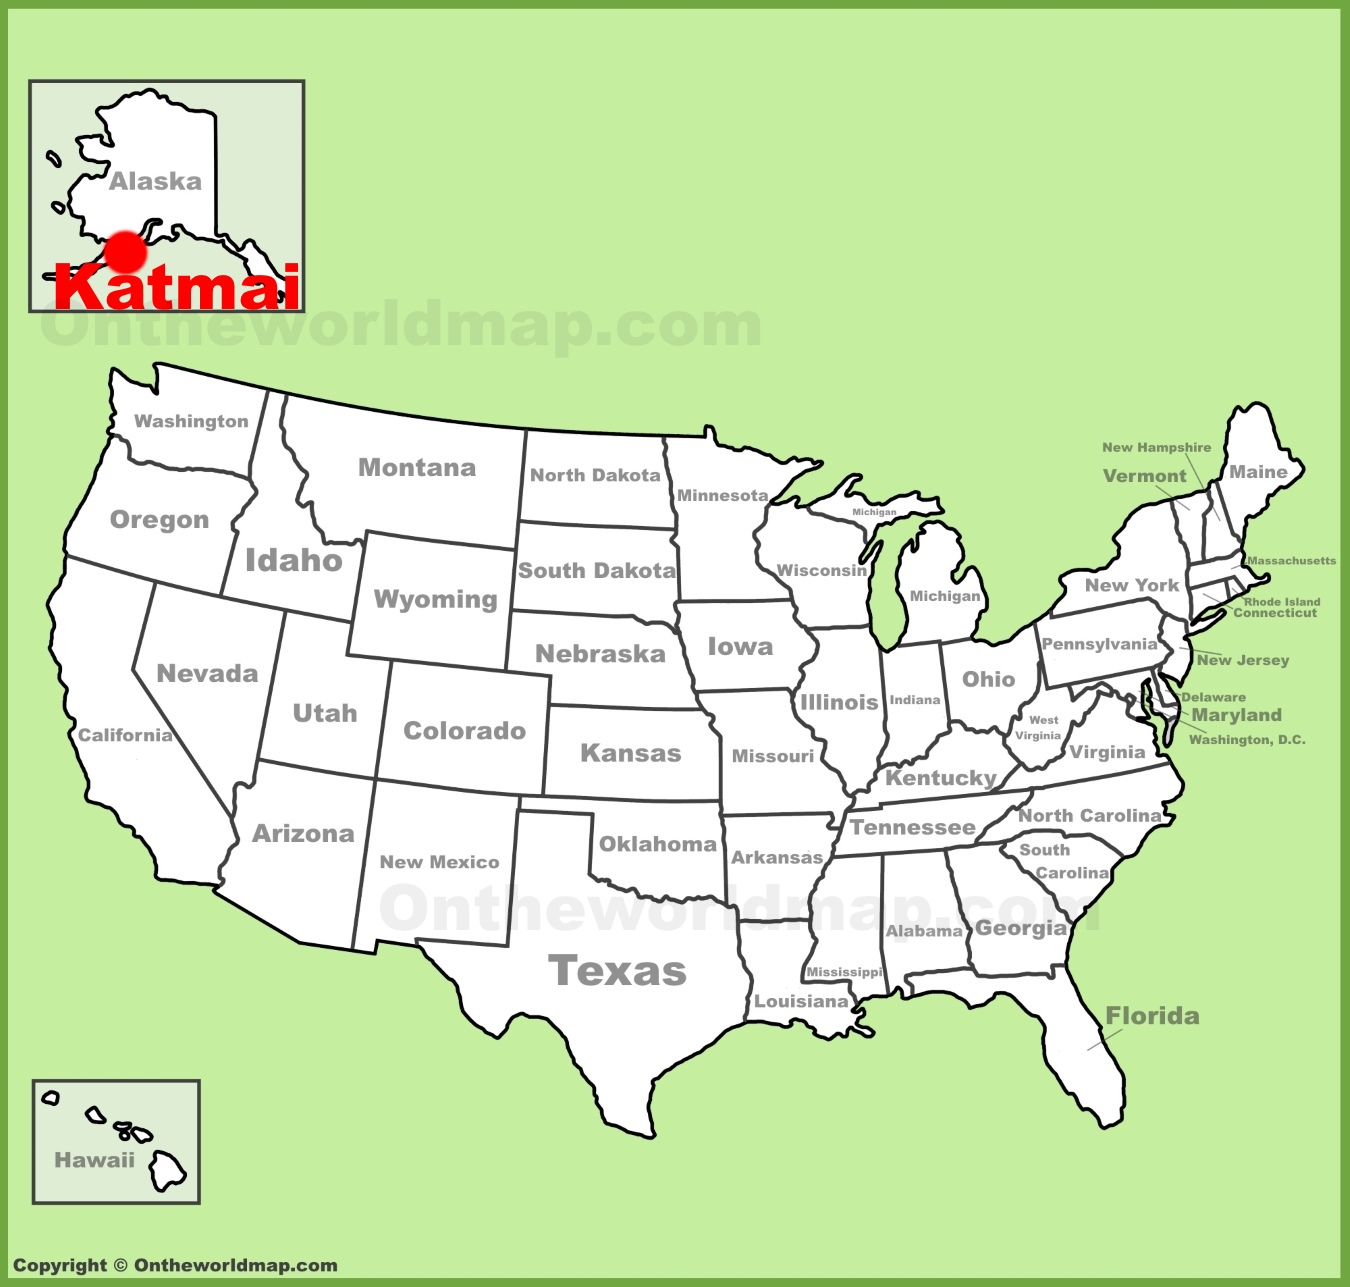 Katmai National Park Location On The US Map - National parks locations map